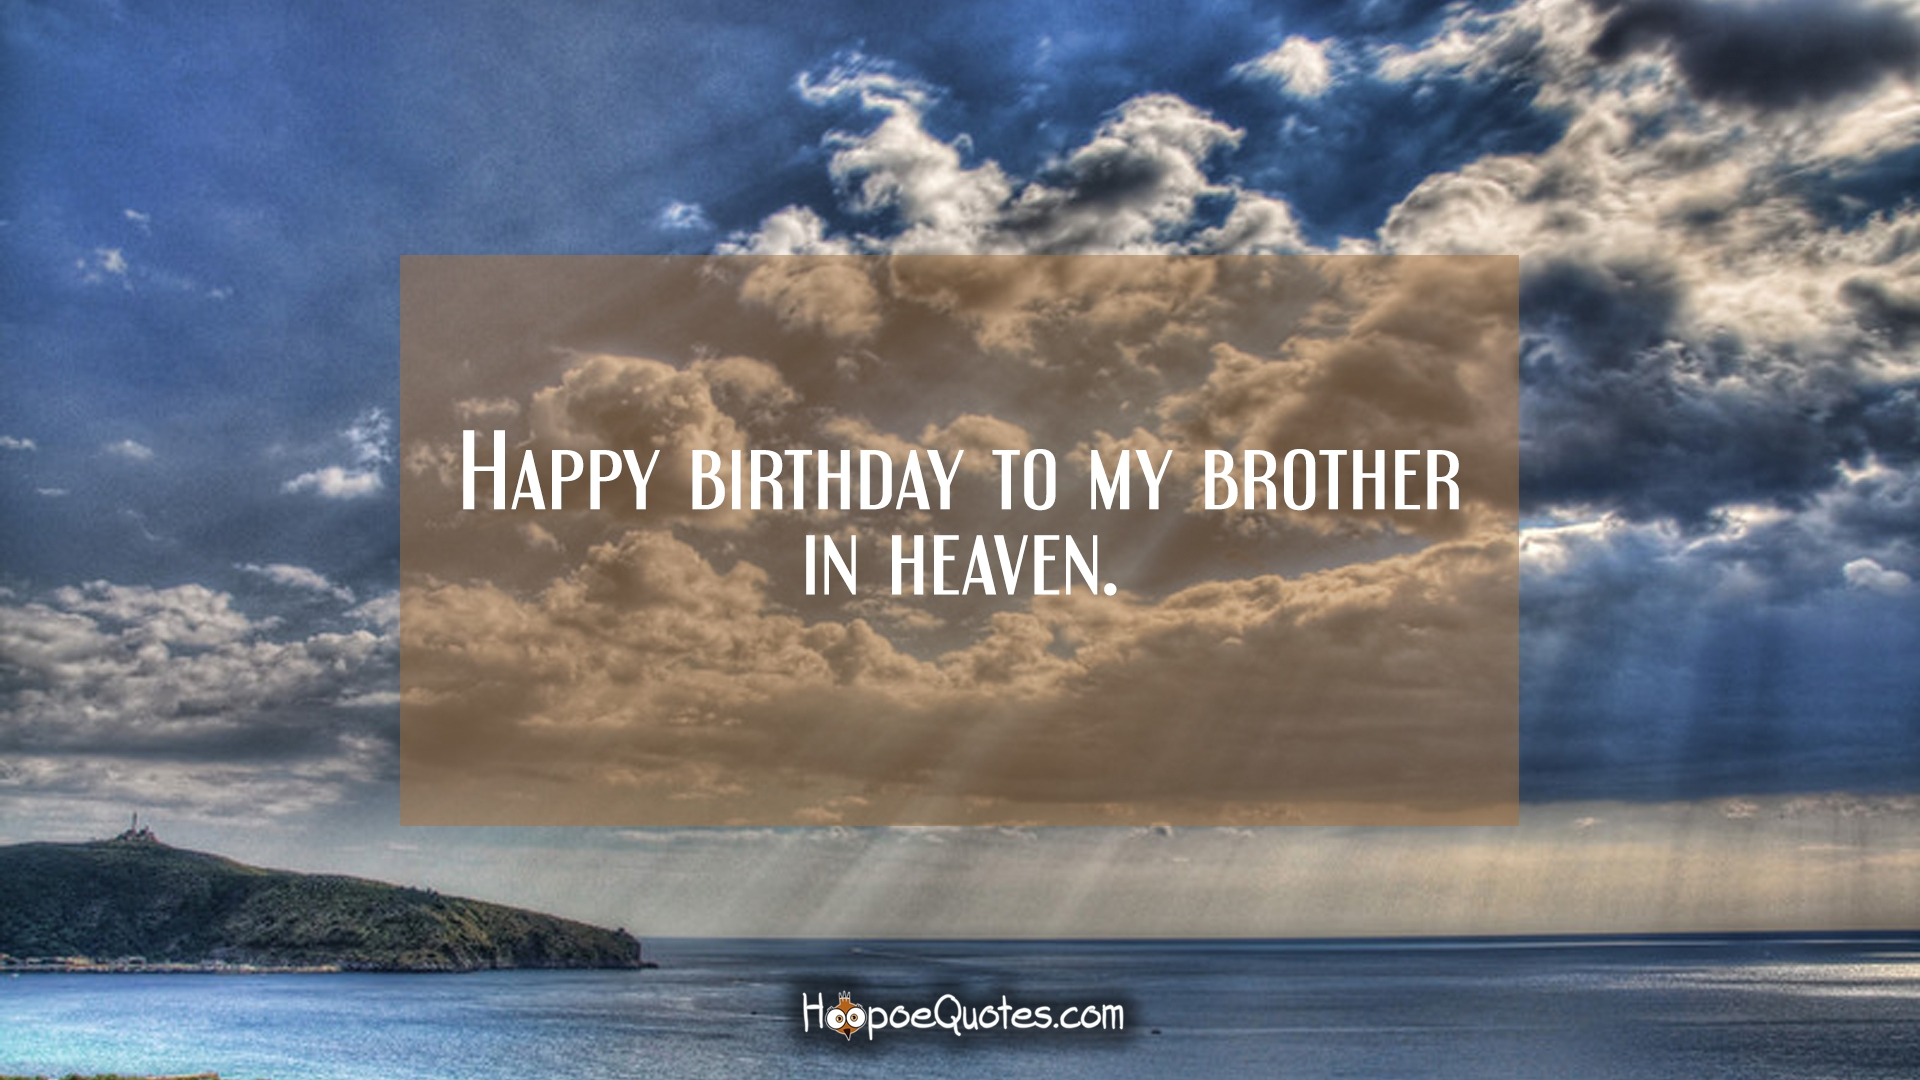 happy birthday to my brother in heaven images ; 80963b91b28ed4d8fec03e67e884ceb2